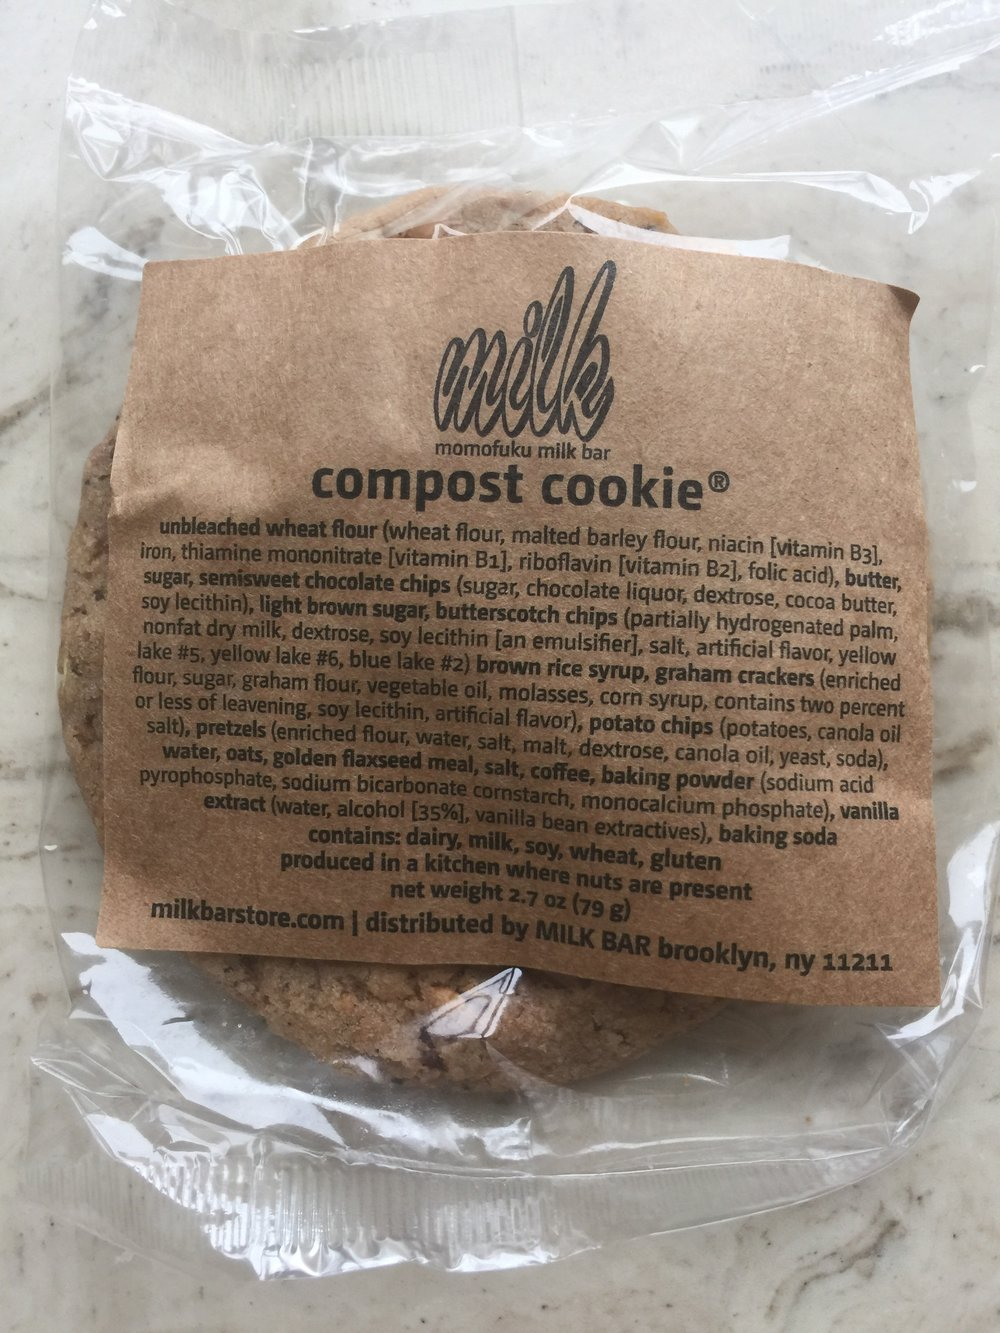 Milk Bar's Compost Cookie: Probably 7 million calories, but I don't know because I ordered it online and chose not to even look.  Also, because Momofuku's Milk Bar has fewer than 20 locations, they are exempt from New York City's calorie posting laws.